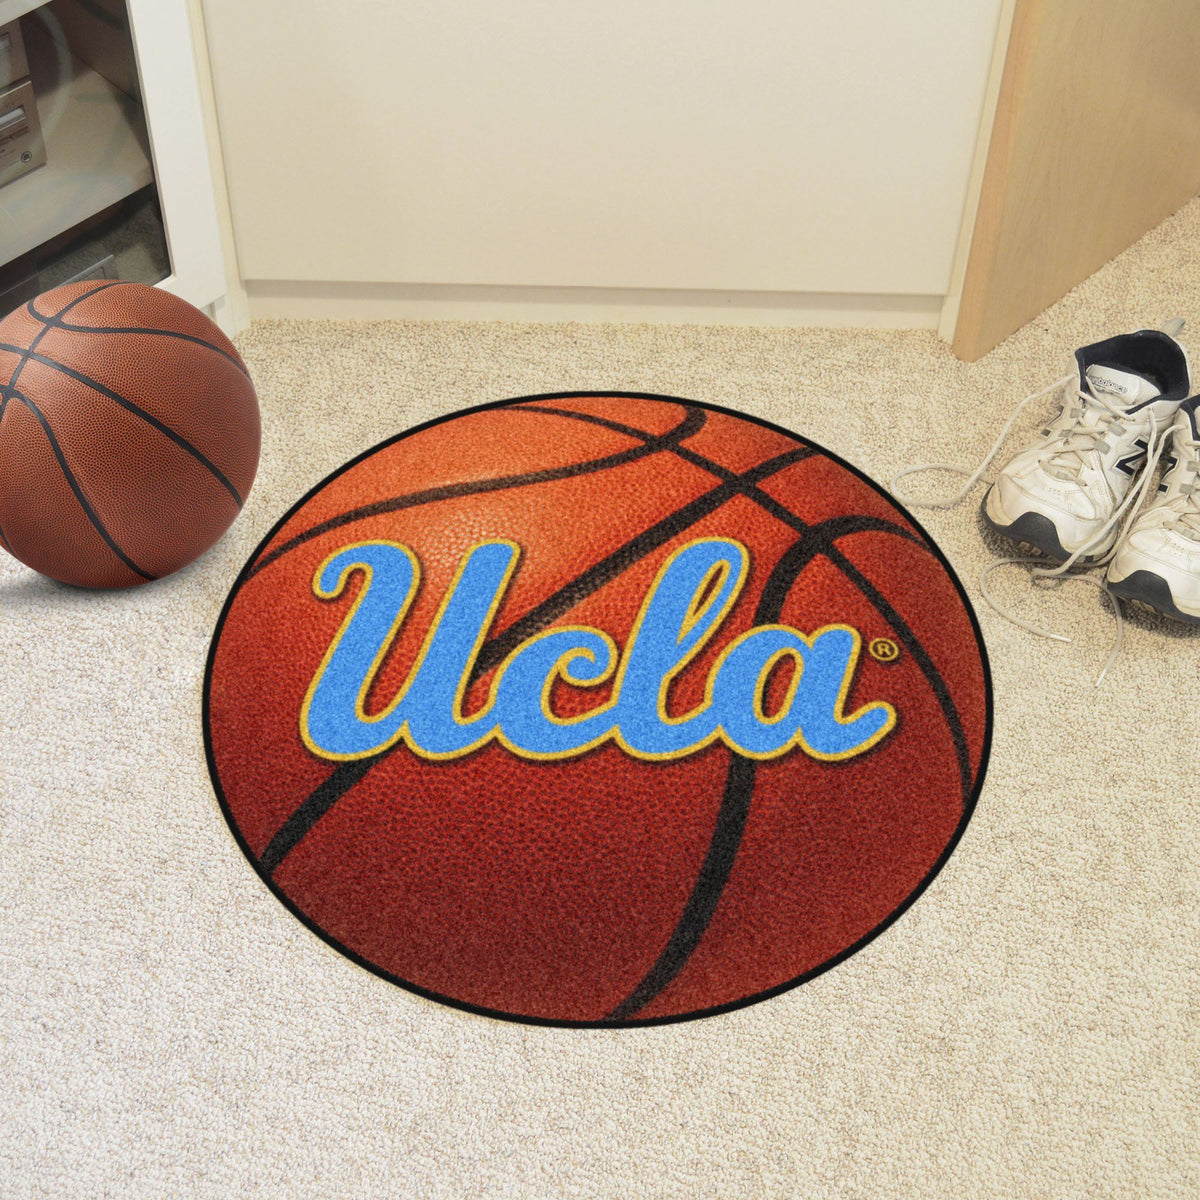 Collegiate - Basketball Mat: T - Z Collegiate Mats, Rectangular Mats, Basketball Mat, Collegiate, Home Fan Mats UCLA